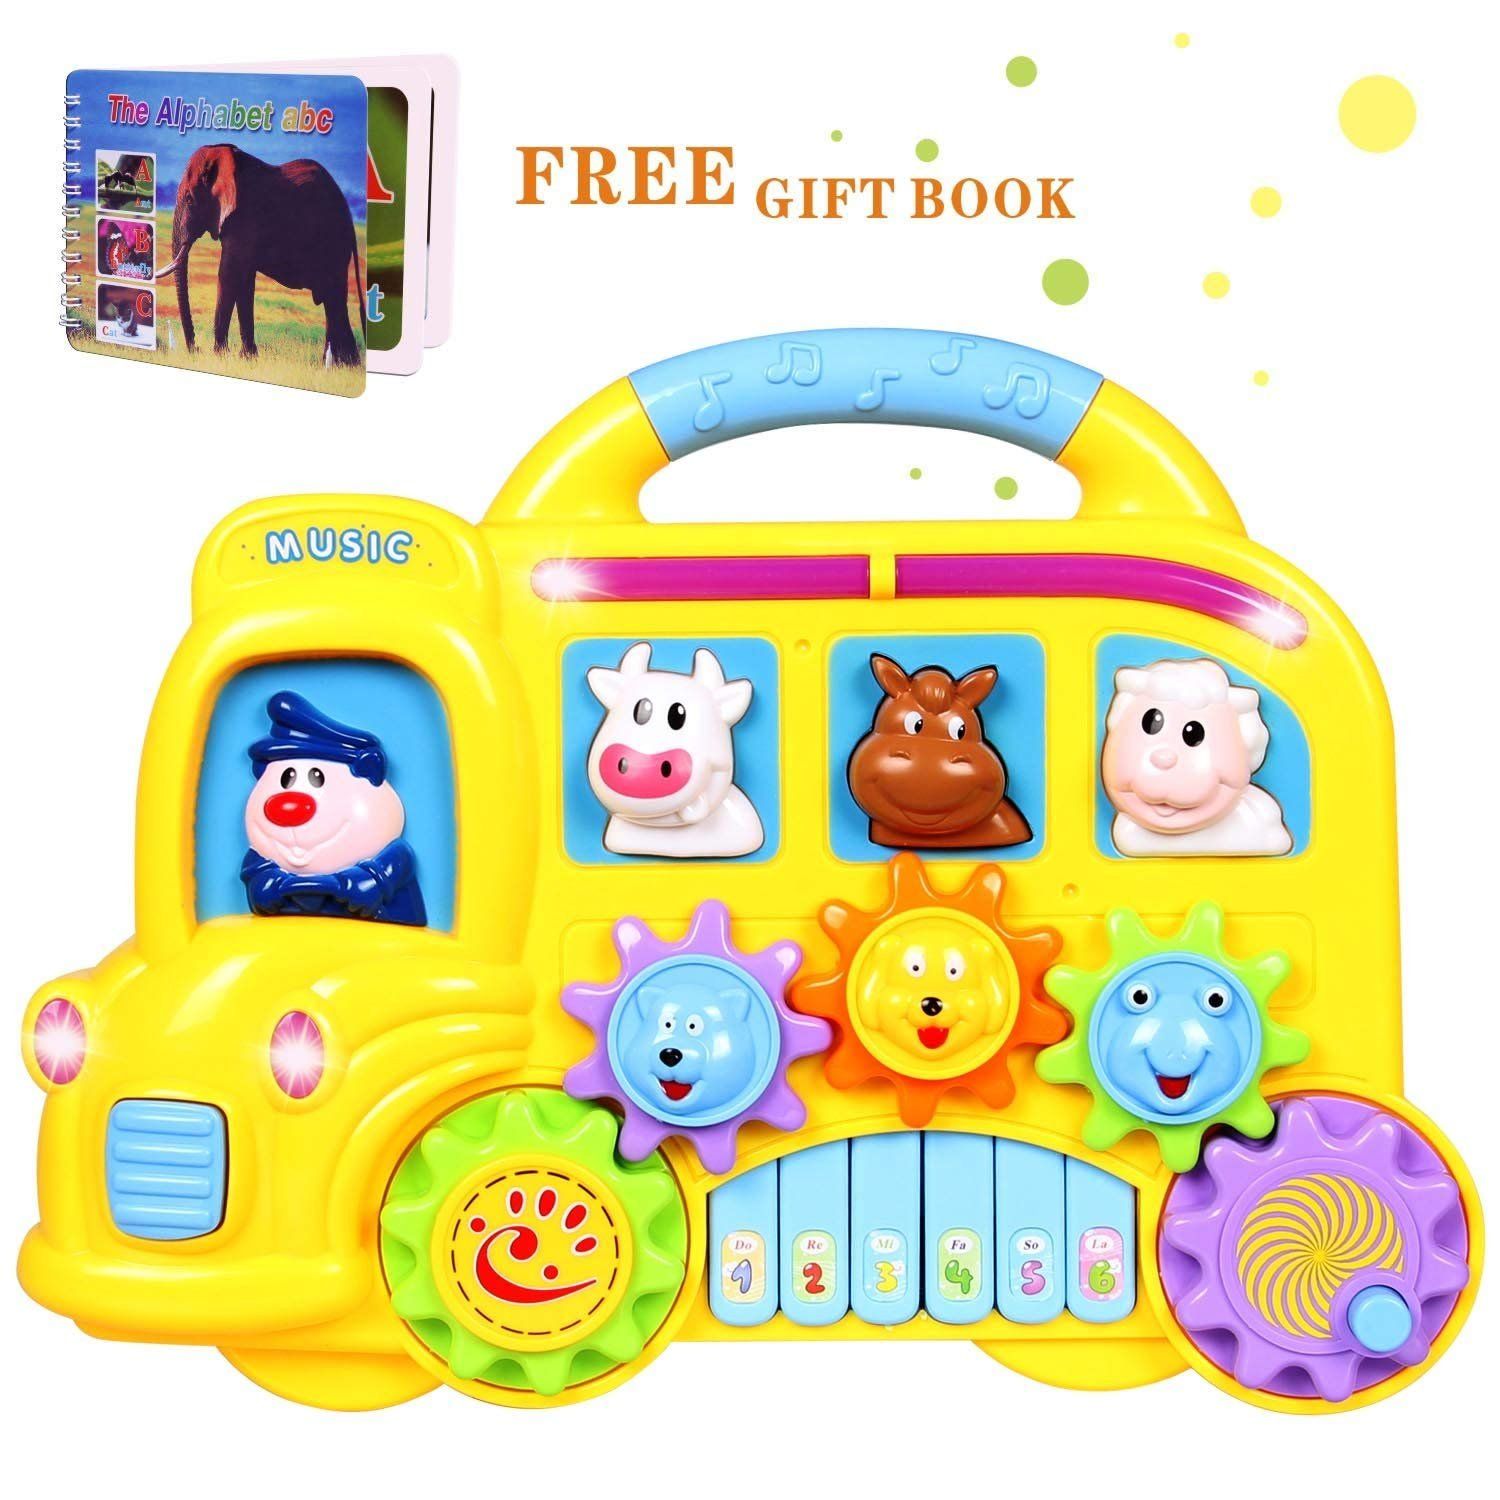 ACTRINIC Baby Music Toys 6 to 12 Months up, Learning and Development Toddler Toys Fun Musical Car Piano Keyboard Electronic Educational Toys with Lights, Sounds and Animals Set